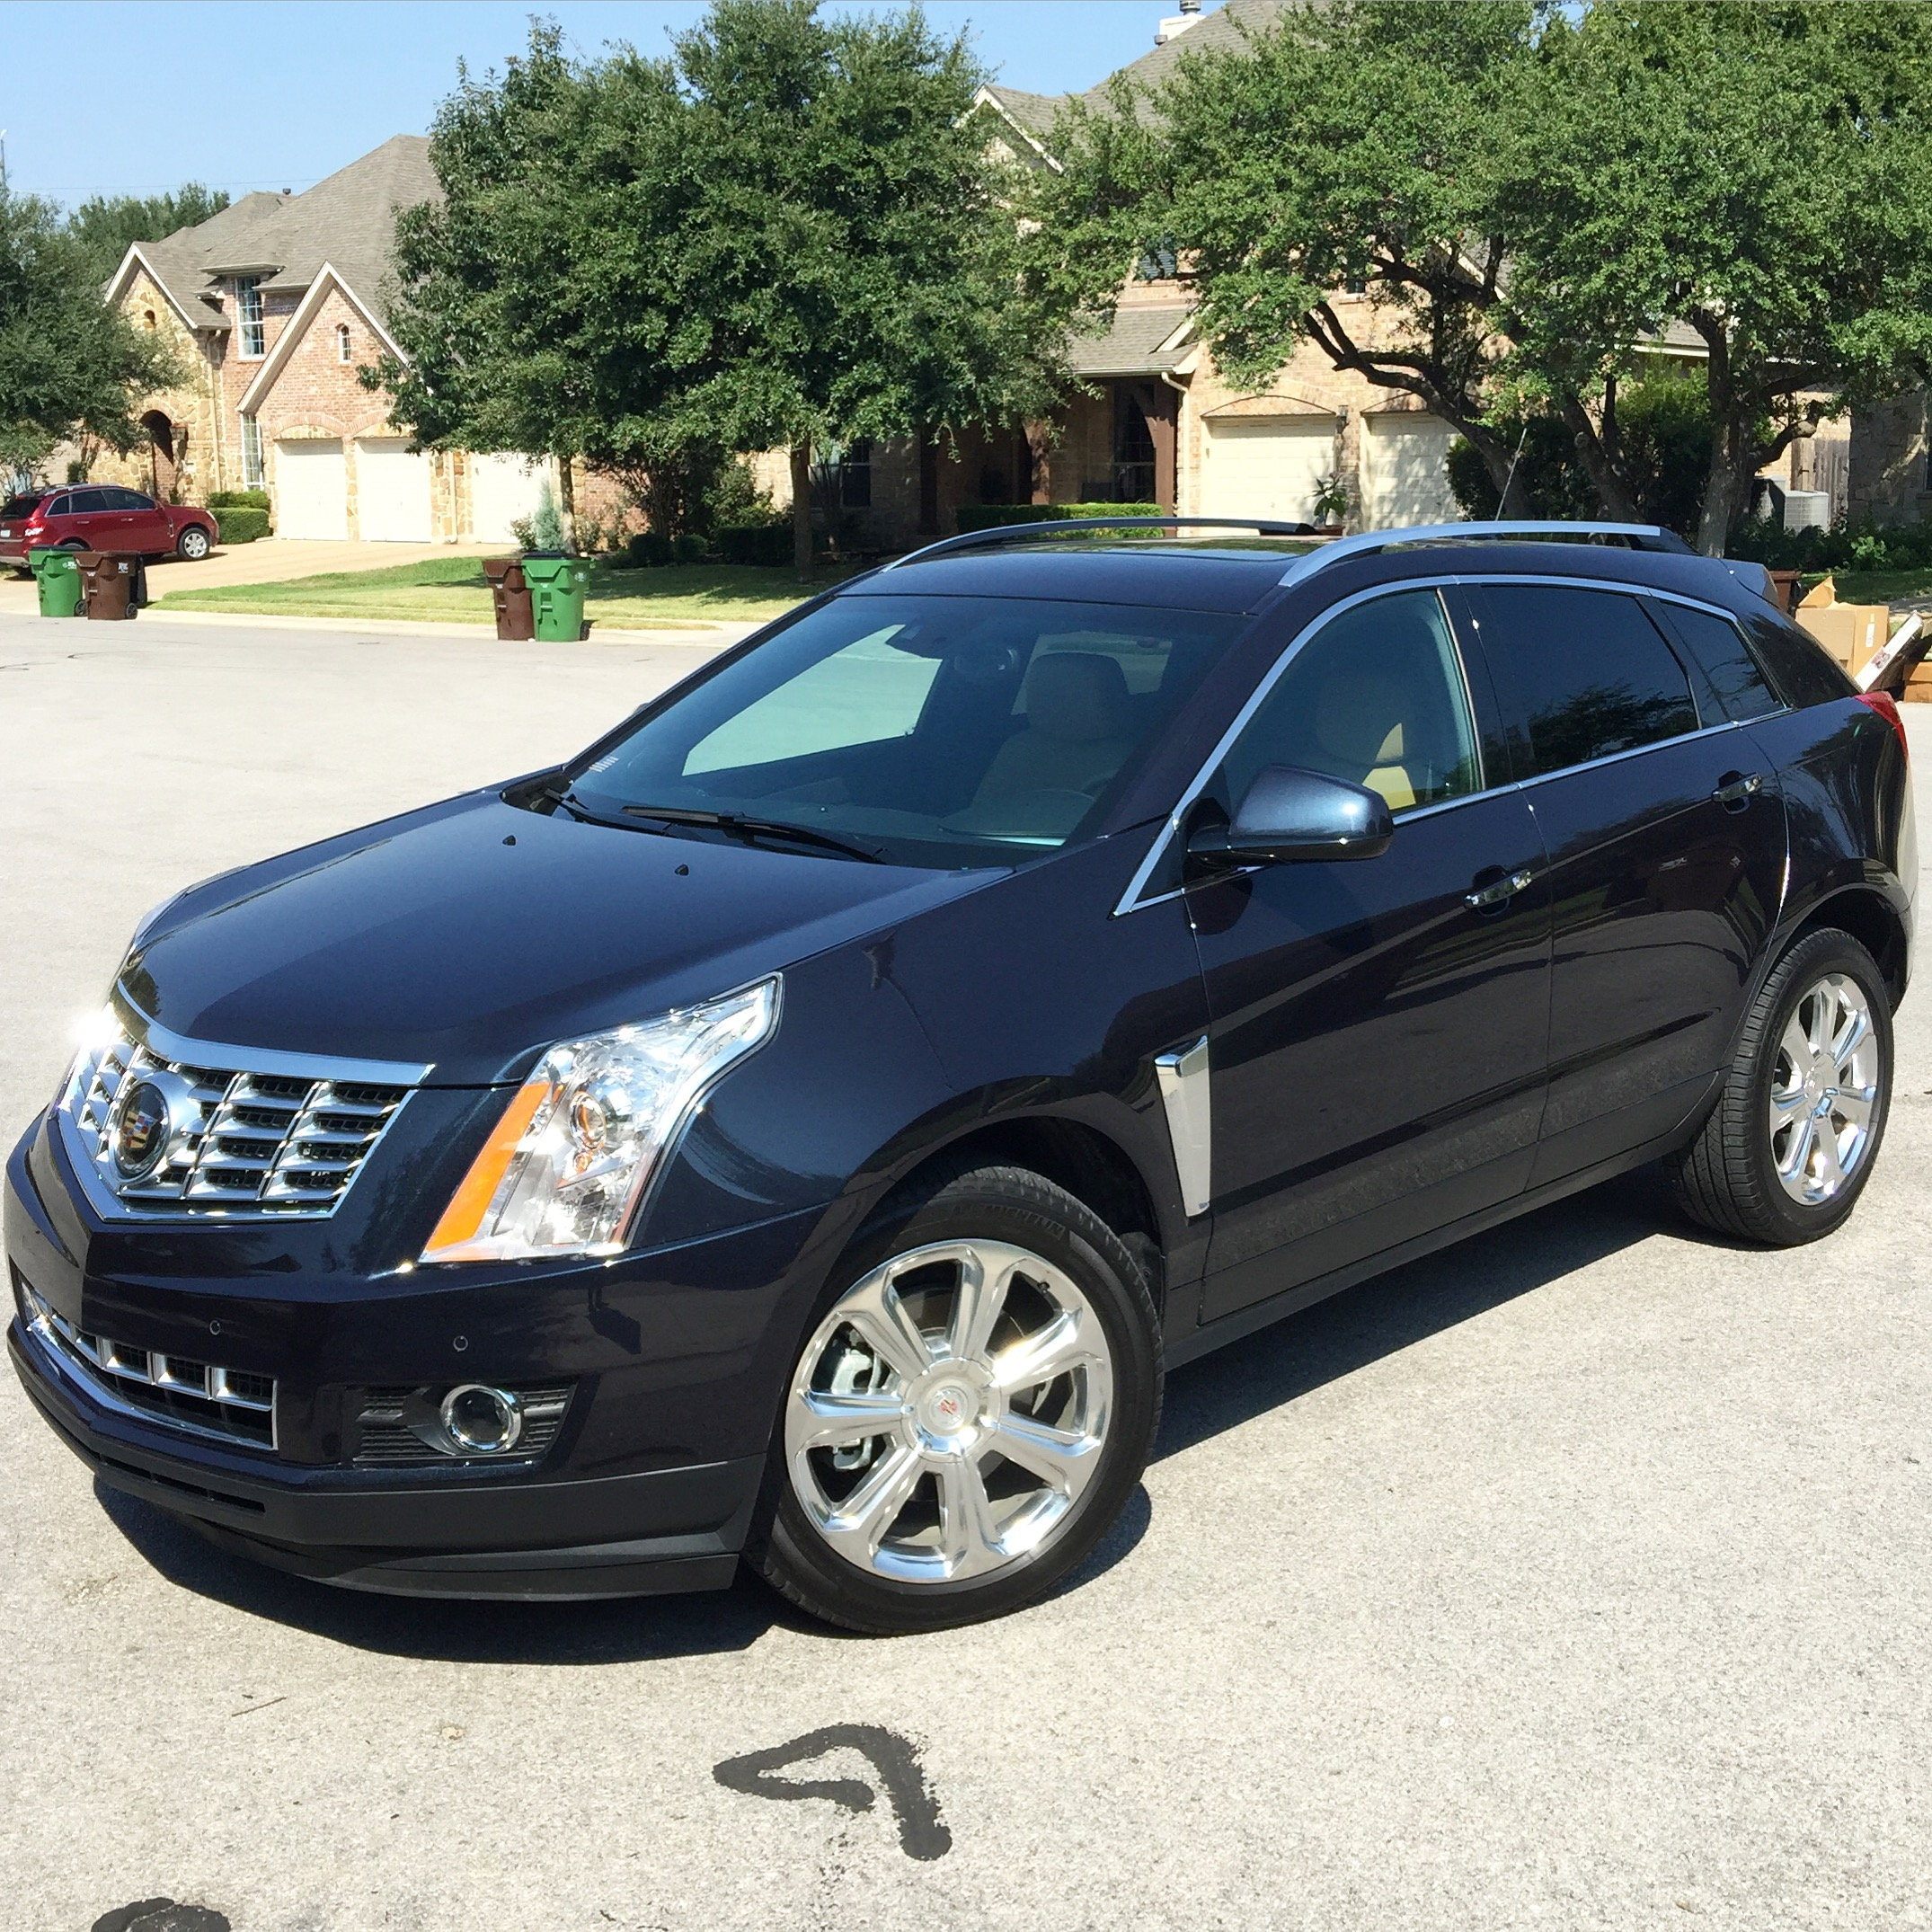 Review of 2016 Cadillac SRX | Search for #MomsPerfectCar